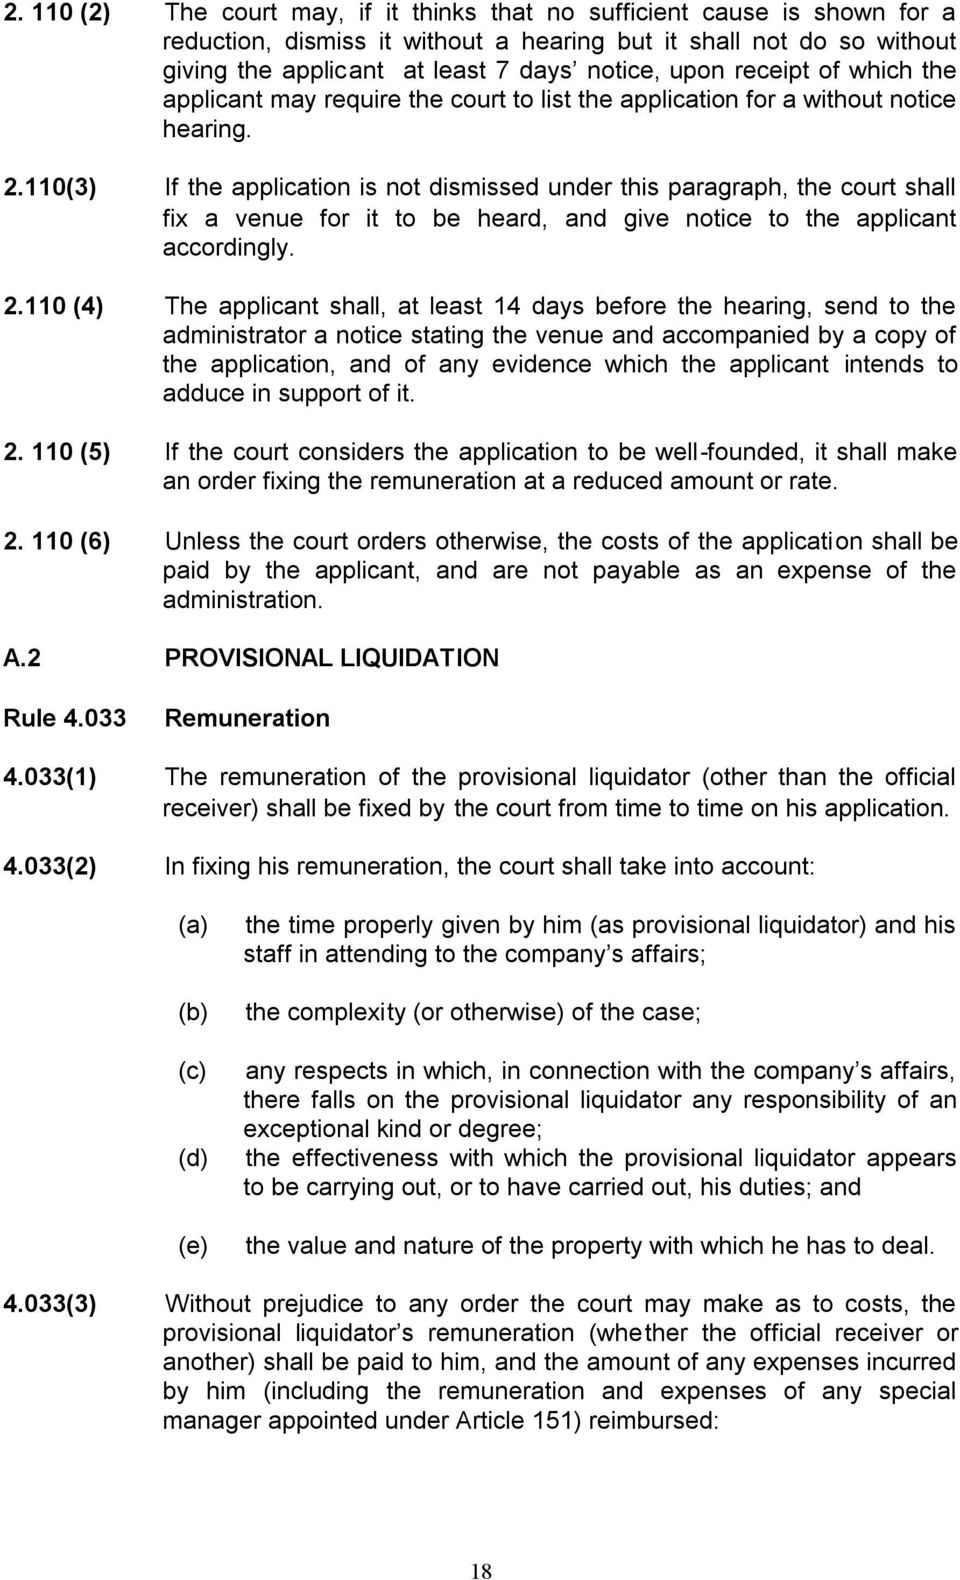 110(3) If the application is not dismissed under this paragraph, the court shall fix a venue for it to be heard, and give notice to the applicant accordingly. 2.